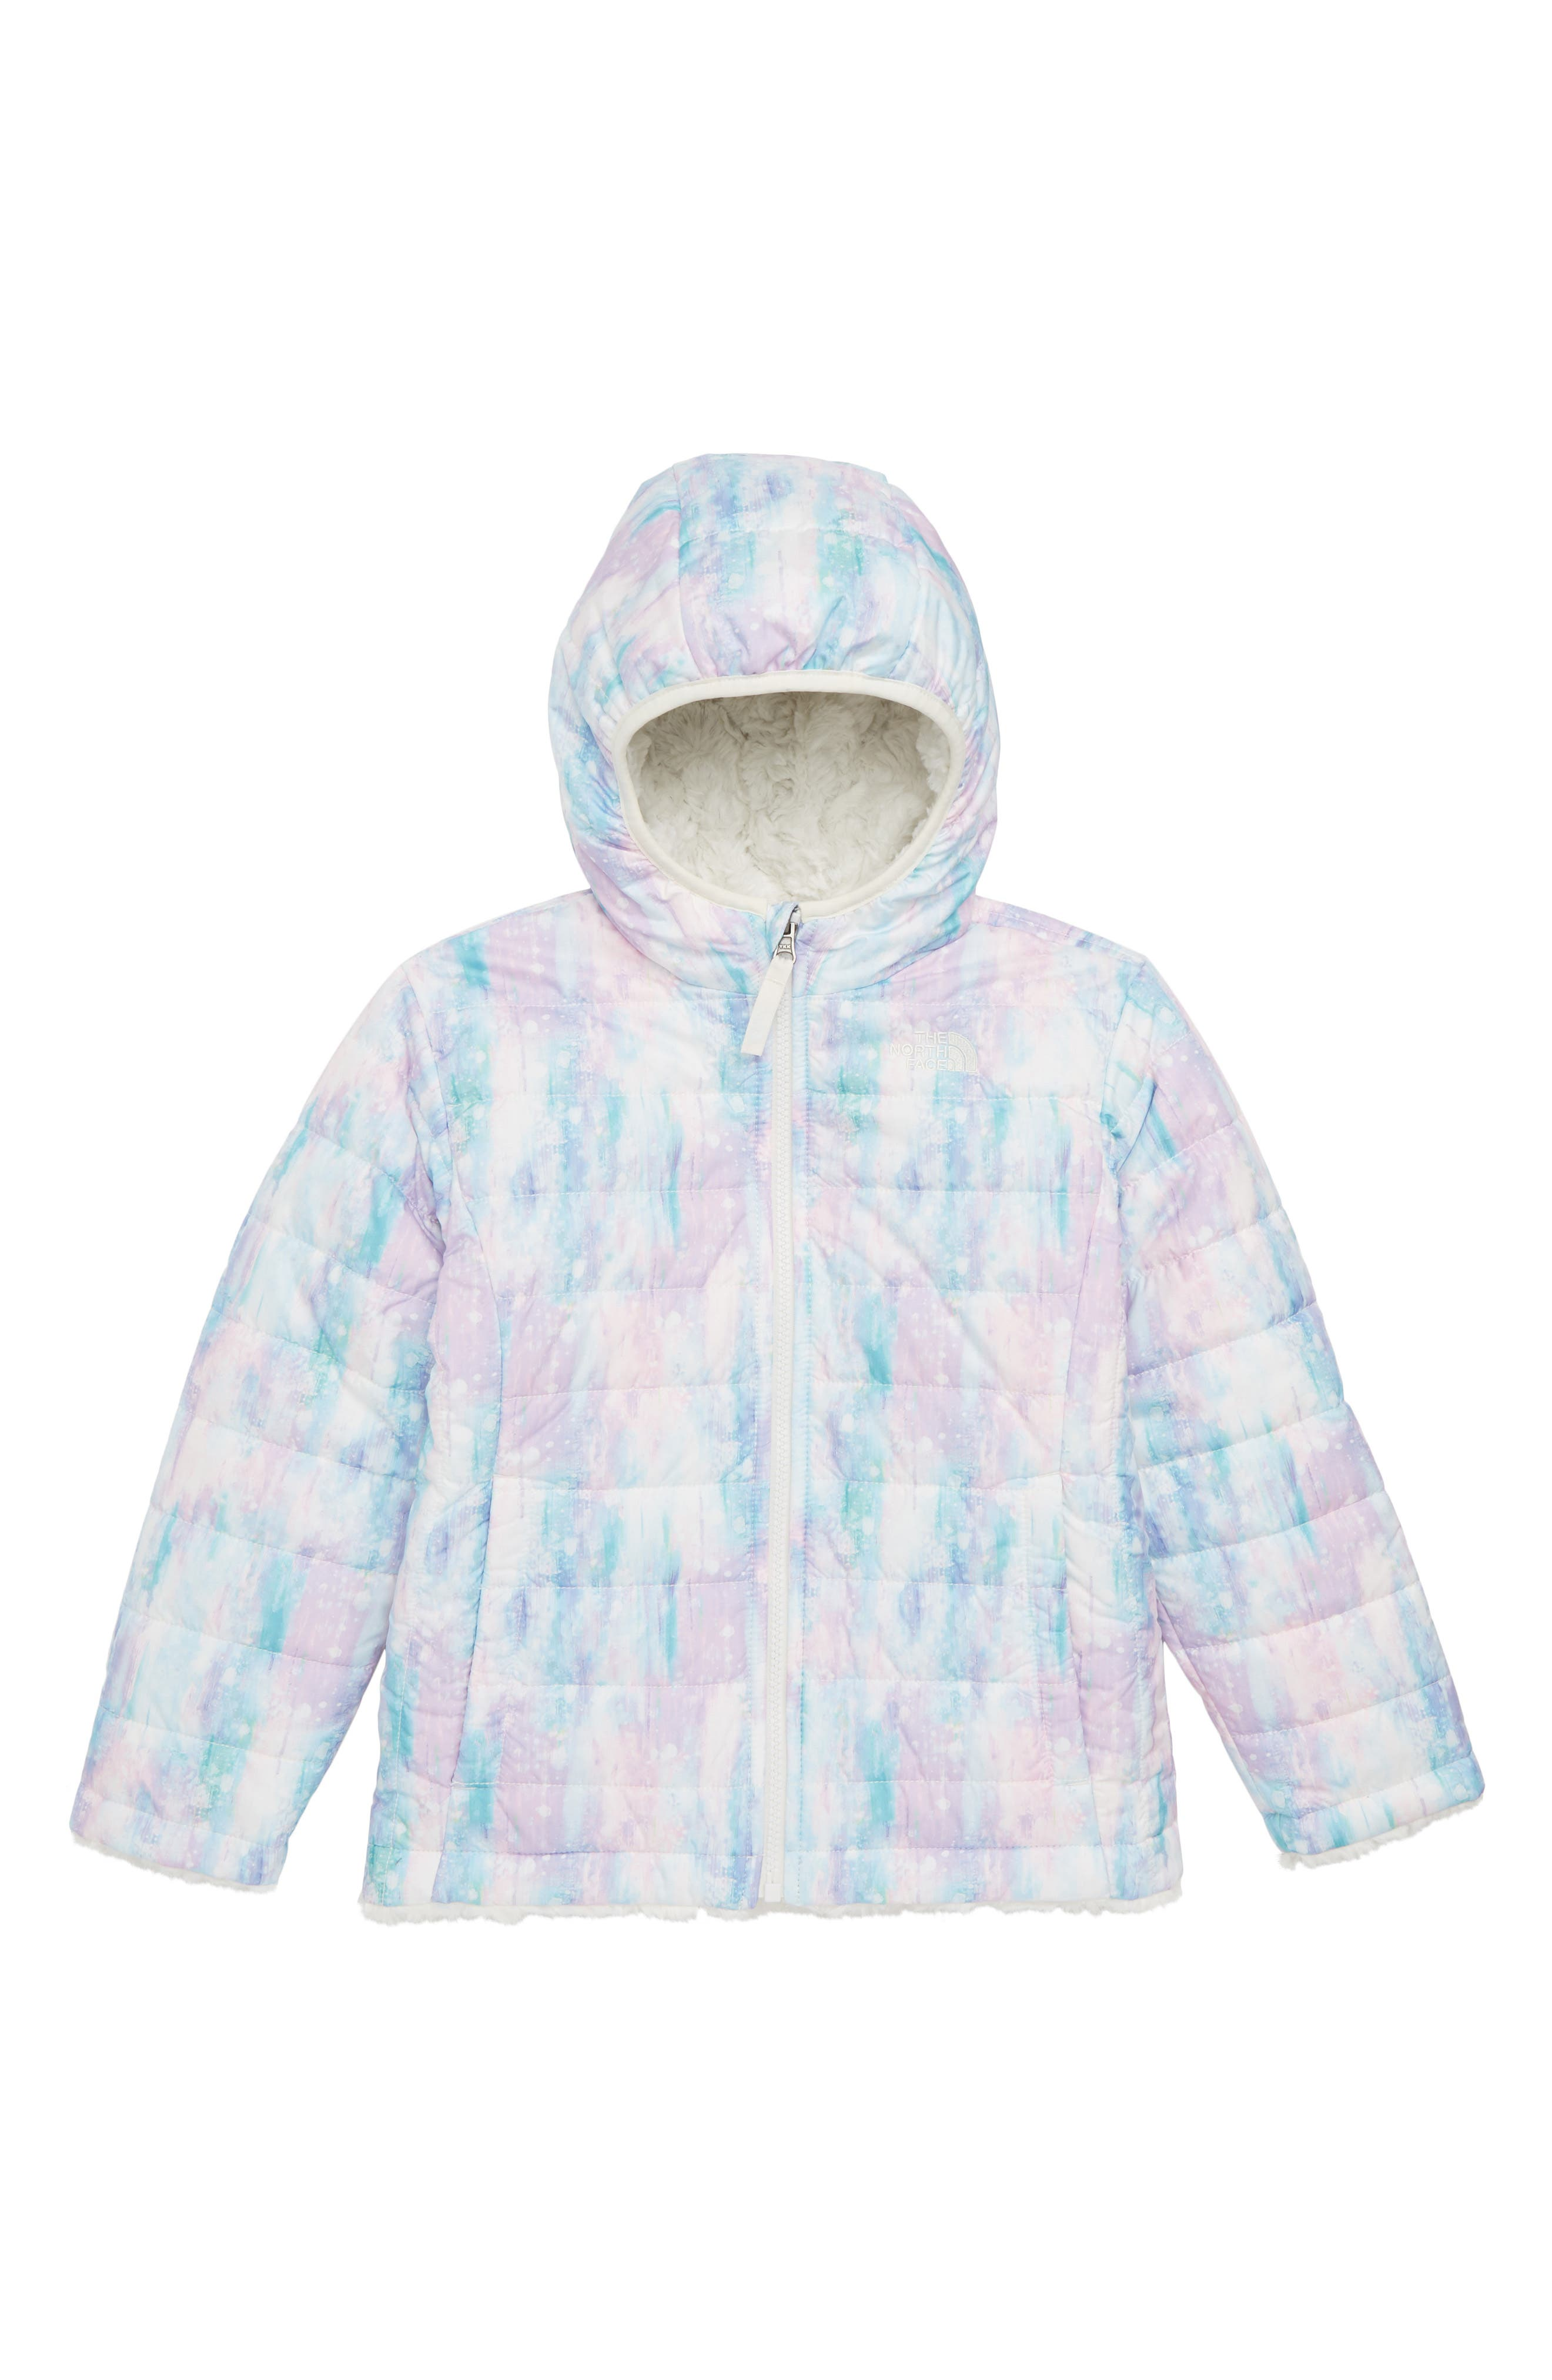 Mossbud Swirl Reversible Jacket,                         Main,                         color, Purdy Pink Snow Dust Print